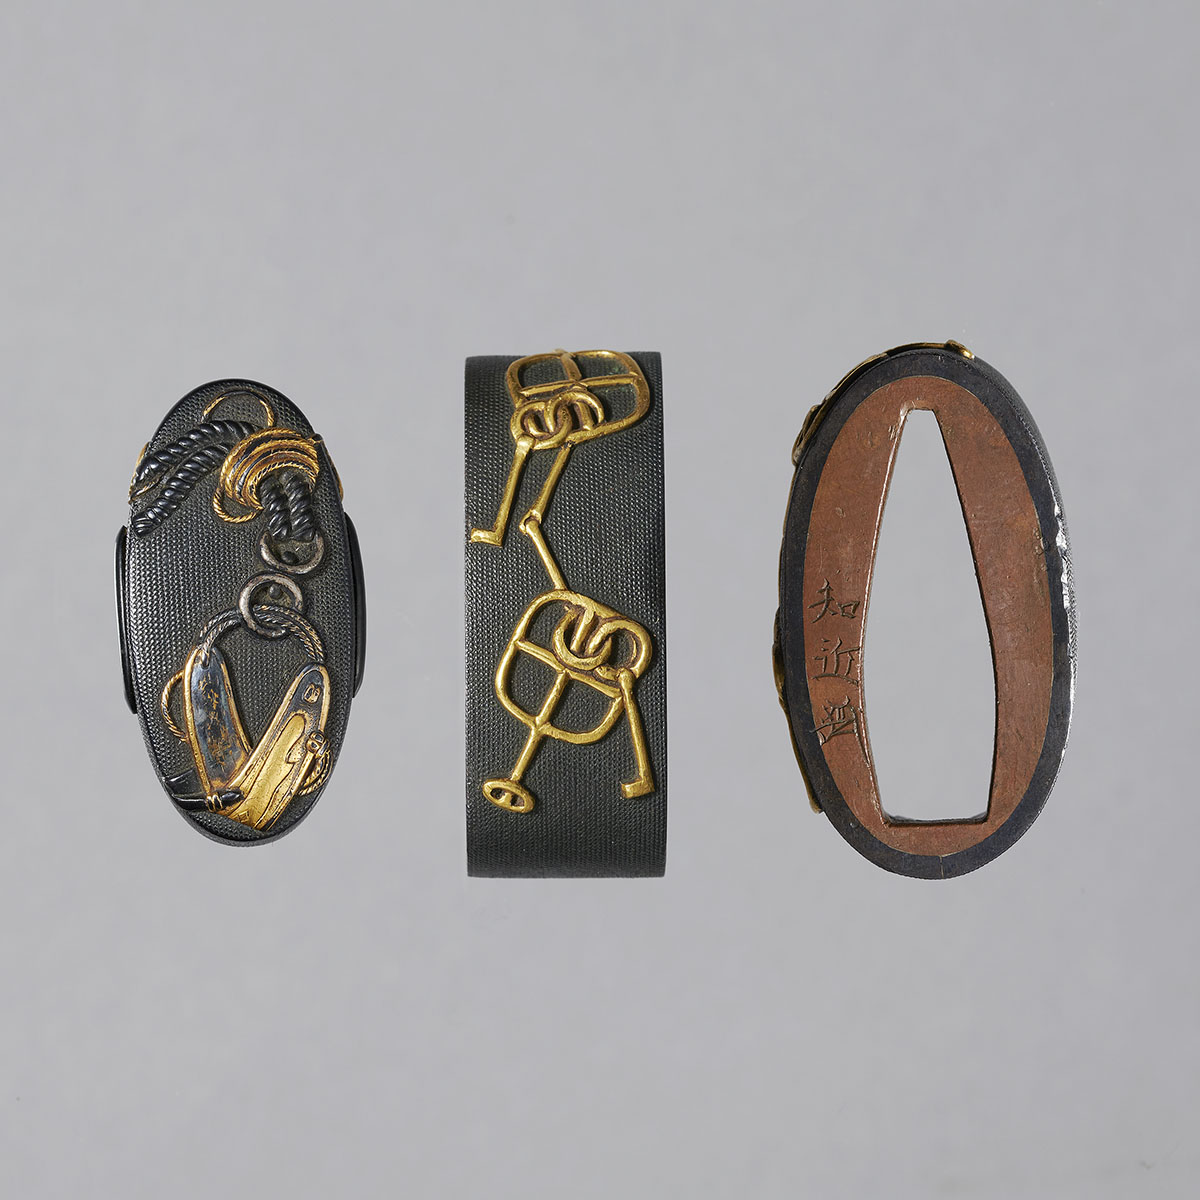 Tomochika Shakudo fuchi-kashira with equestrian harness MR3430